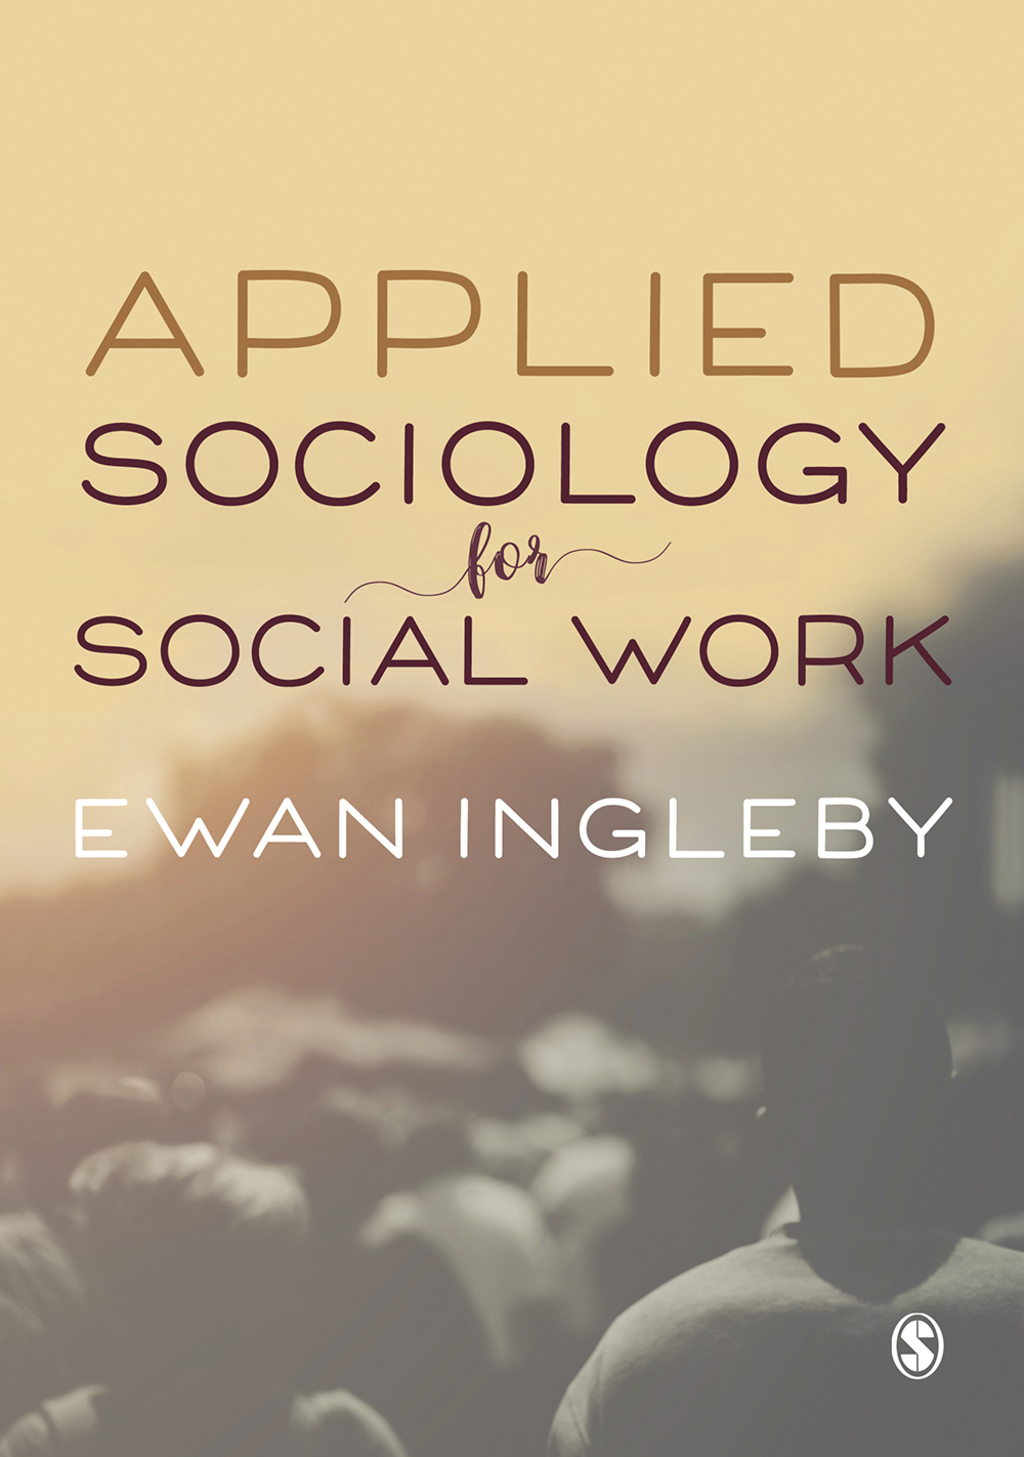 Applied Sociology for Social Work (eBook)